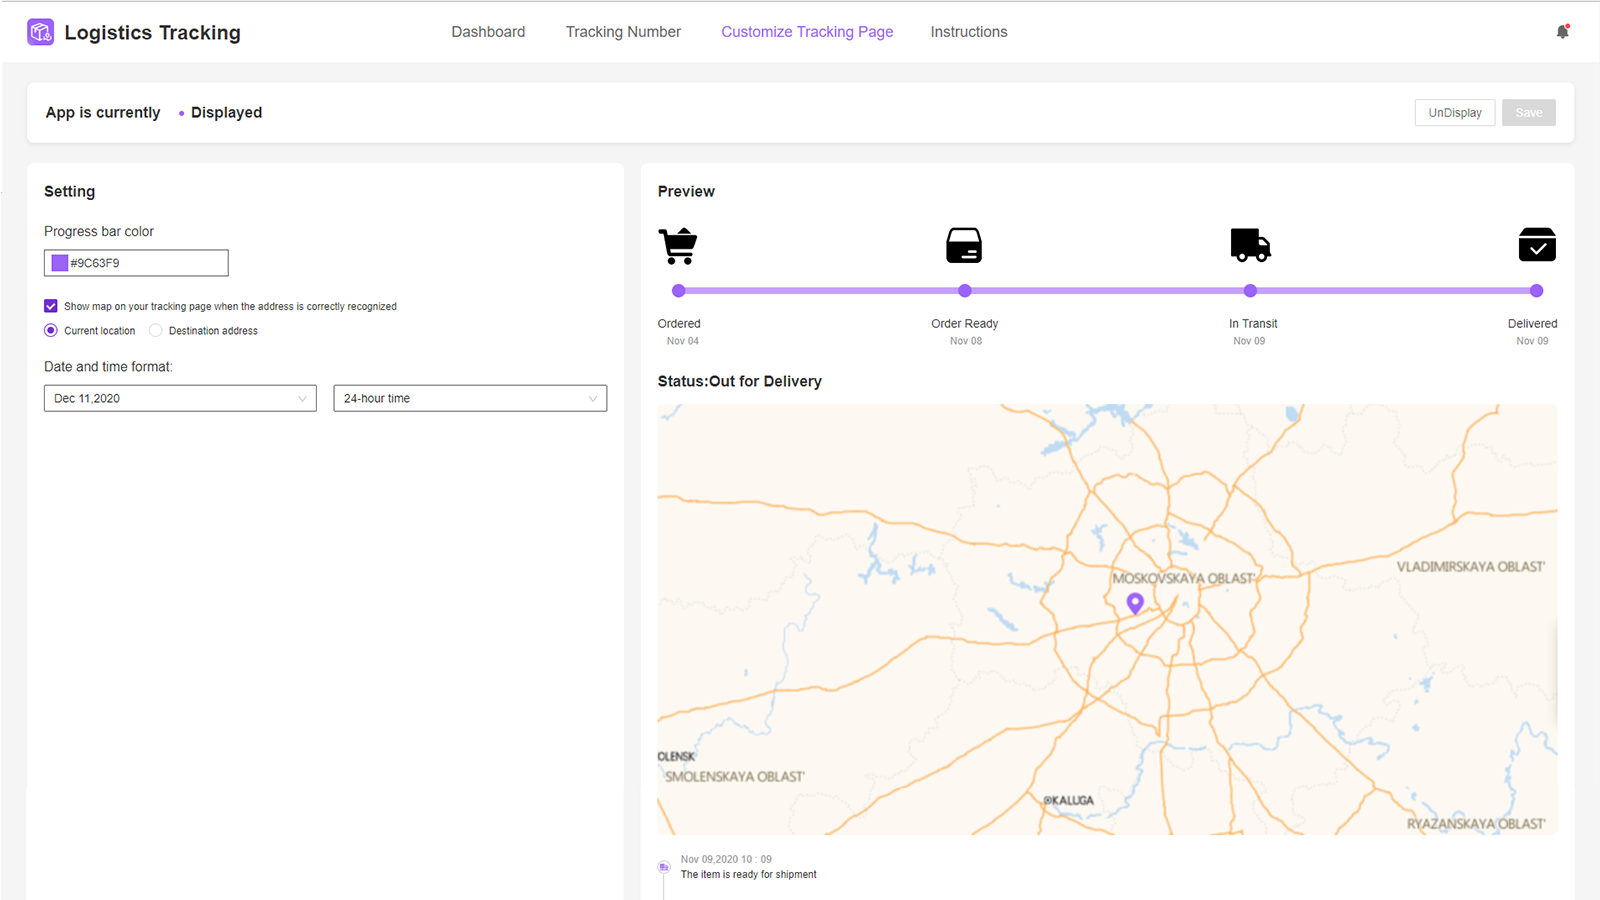 Customize Tracking Page